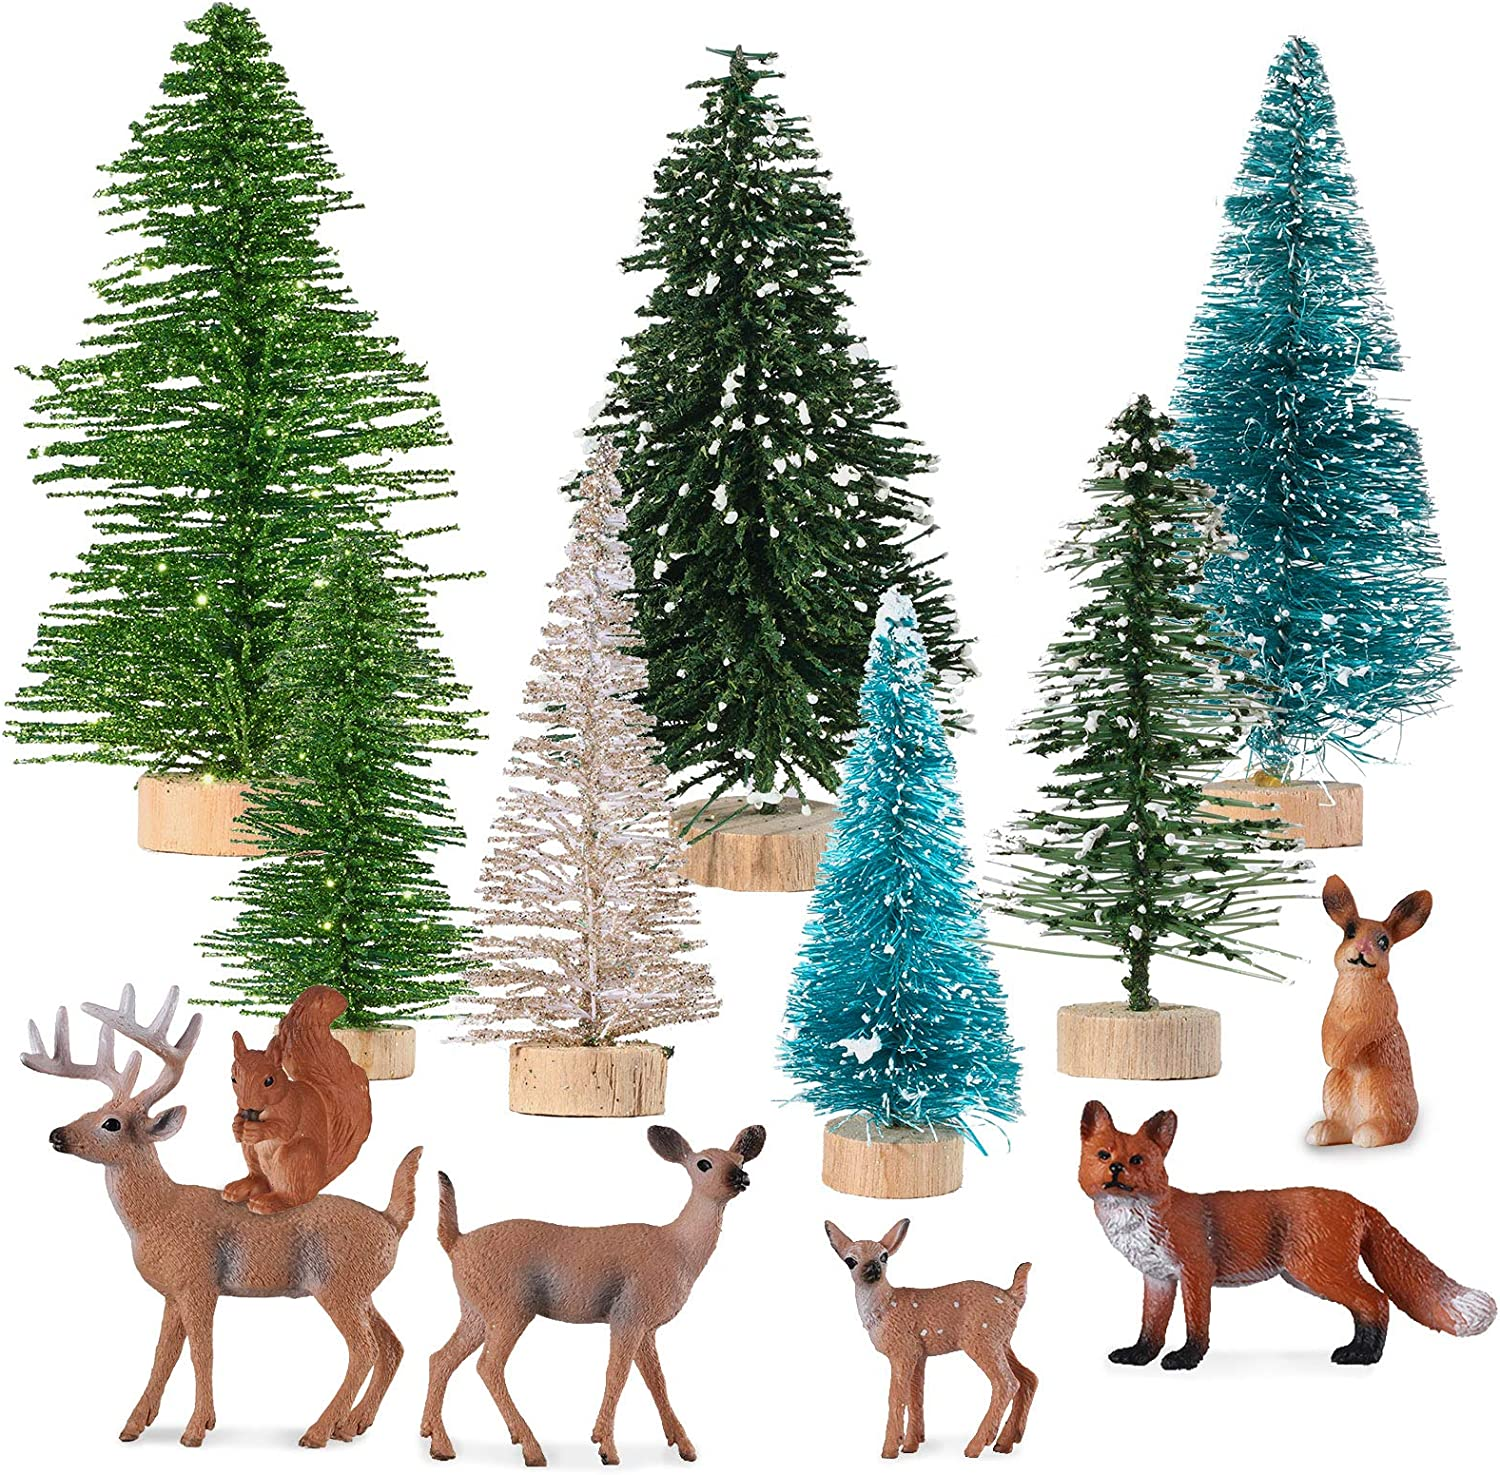 6 Pieces Christmas Mini Forest Animal Figures Toys Christmas Woodland Creatures Figurines Forest Animal Cake Toppers, 7 Pieces Plastic Christmas Tree Snow Tabletop Ornaments for Xmas Decor